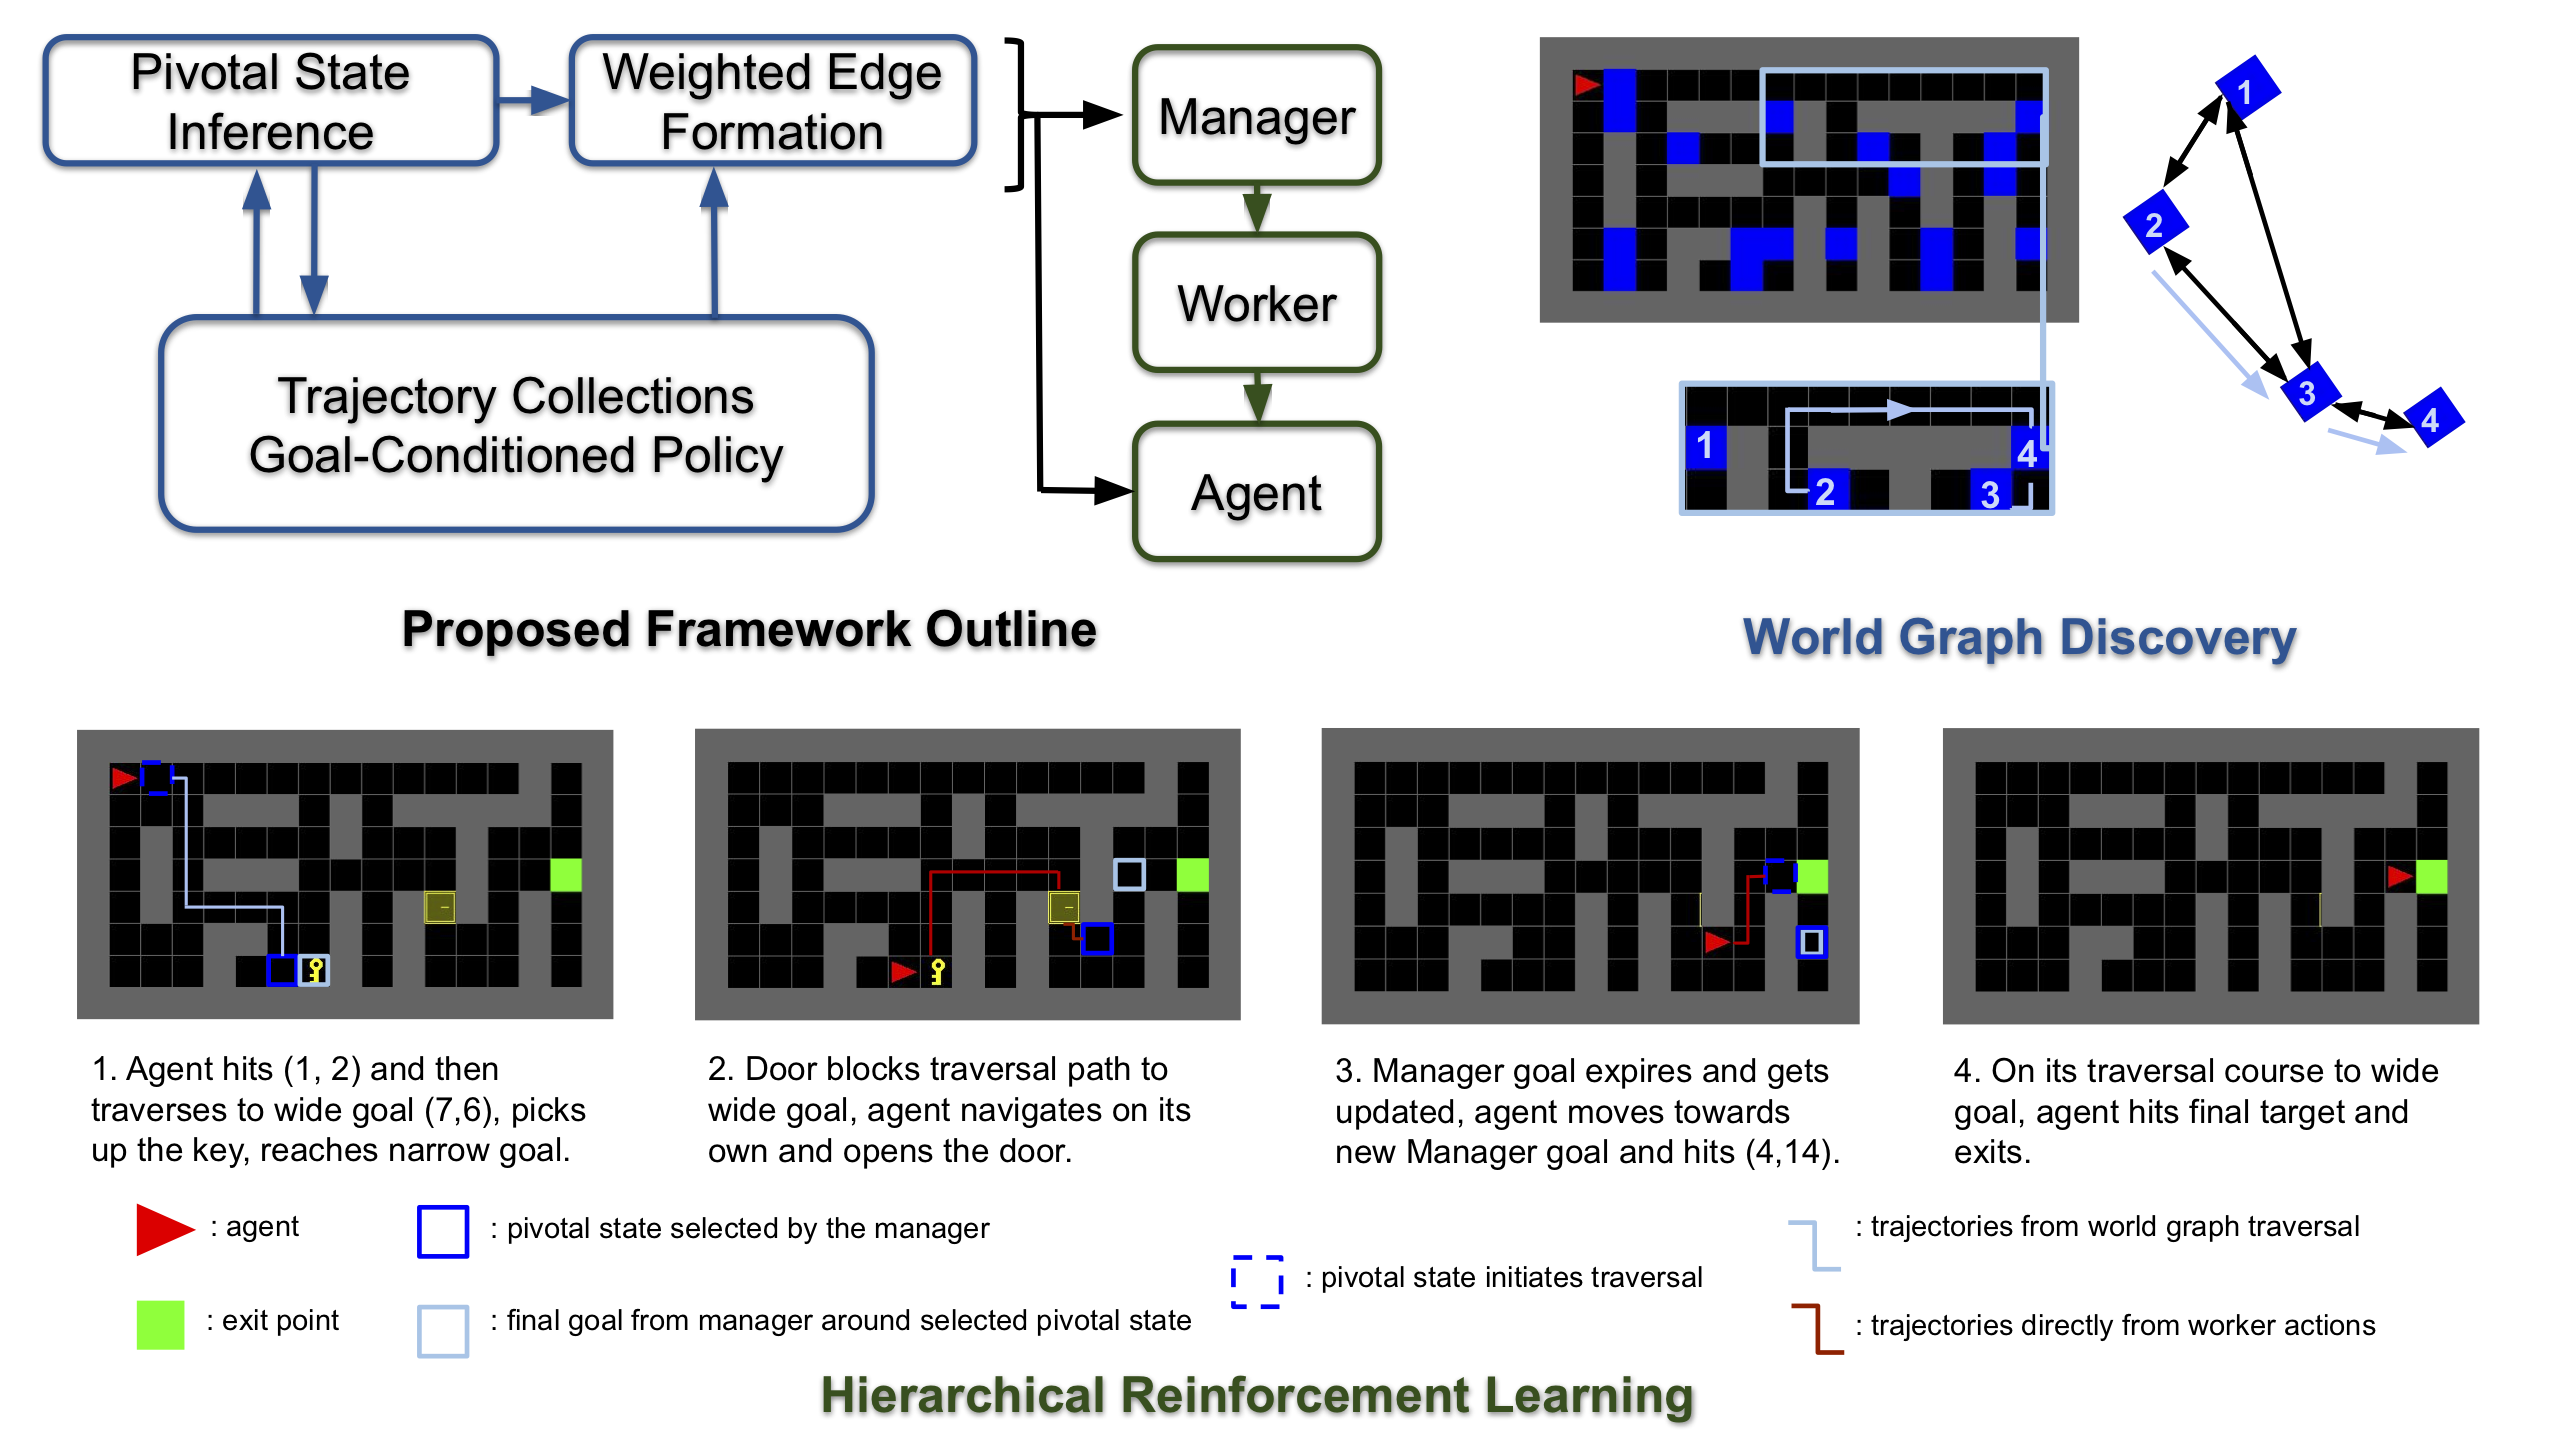 Learning World Graphs to Accelerate Hierarchical